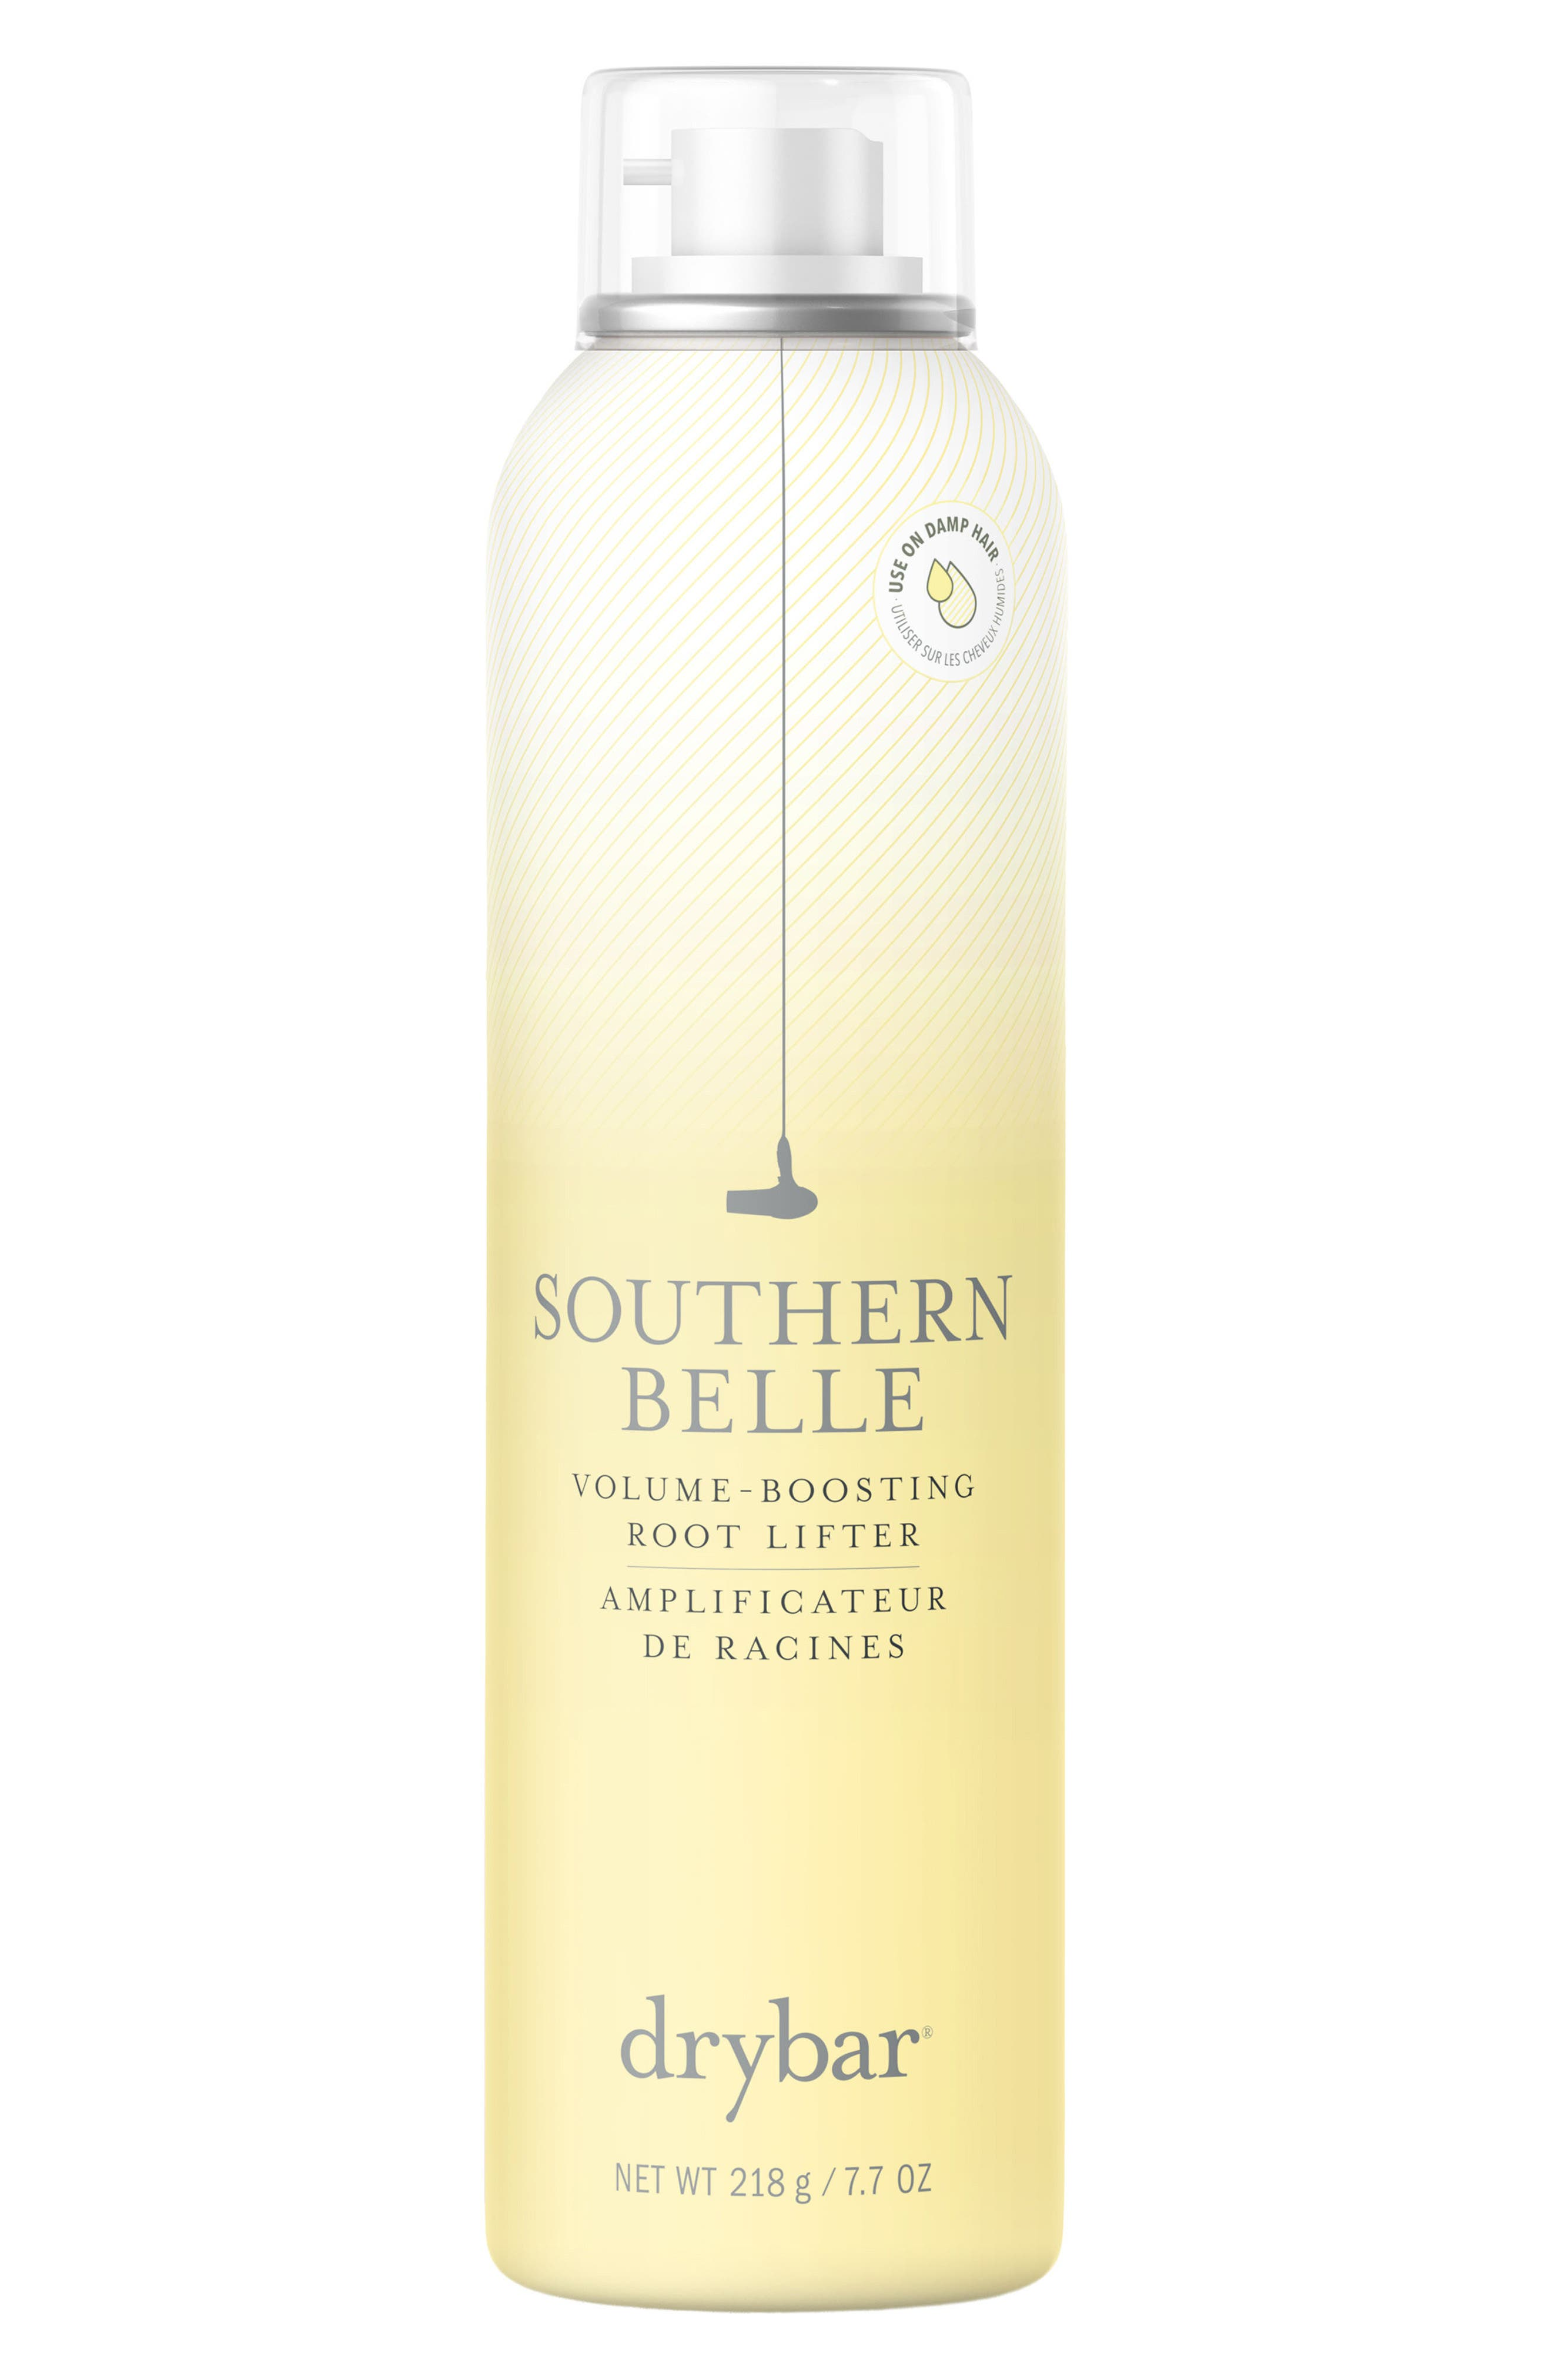 Southern Belle Volume-Boosting Root Lifter,                             Main thumbnail 1, color,                             No Color